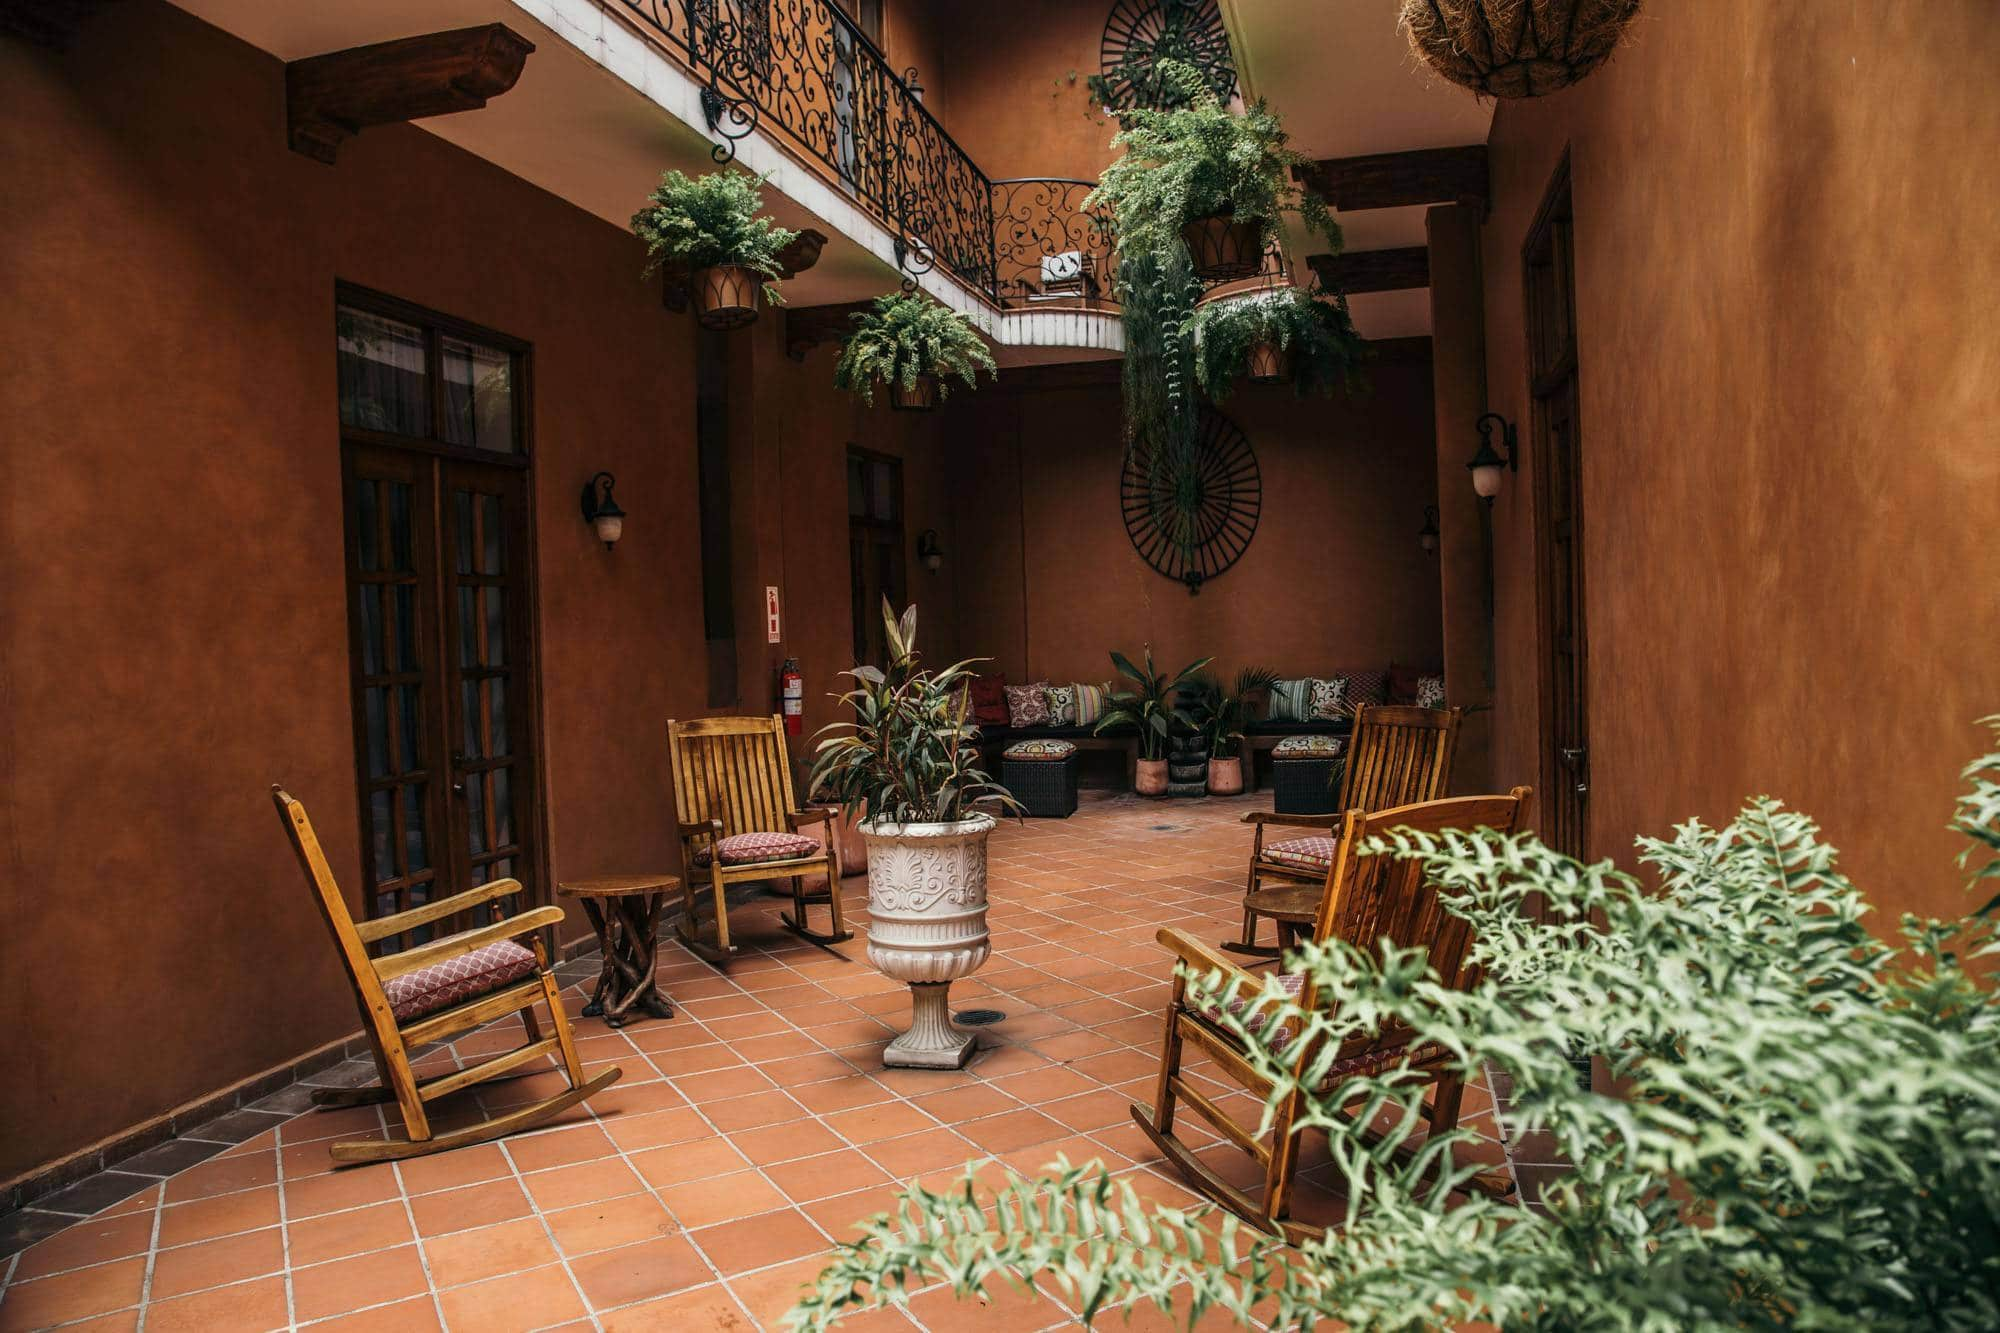 internal Spanish style courtyard with rocking chairs and plants in La Isabela Suites